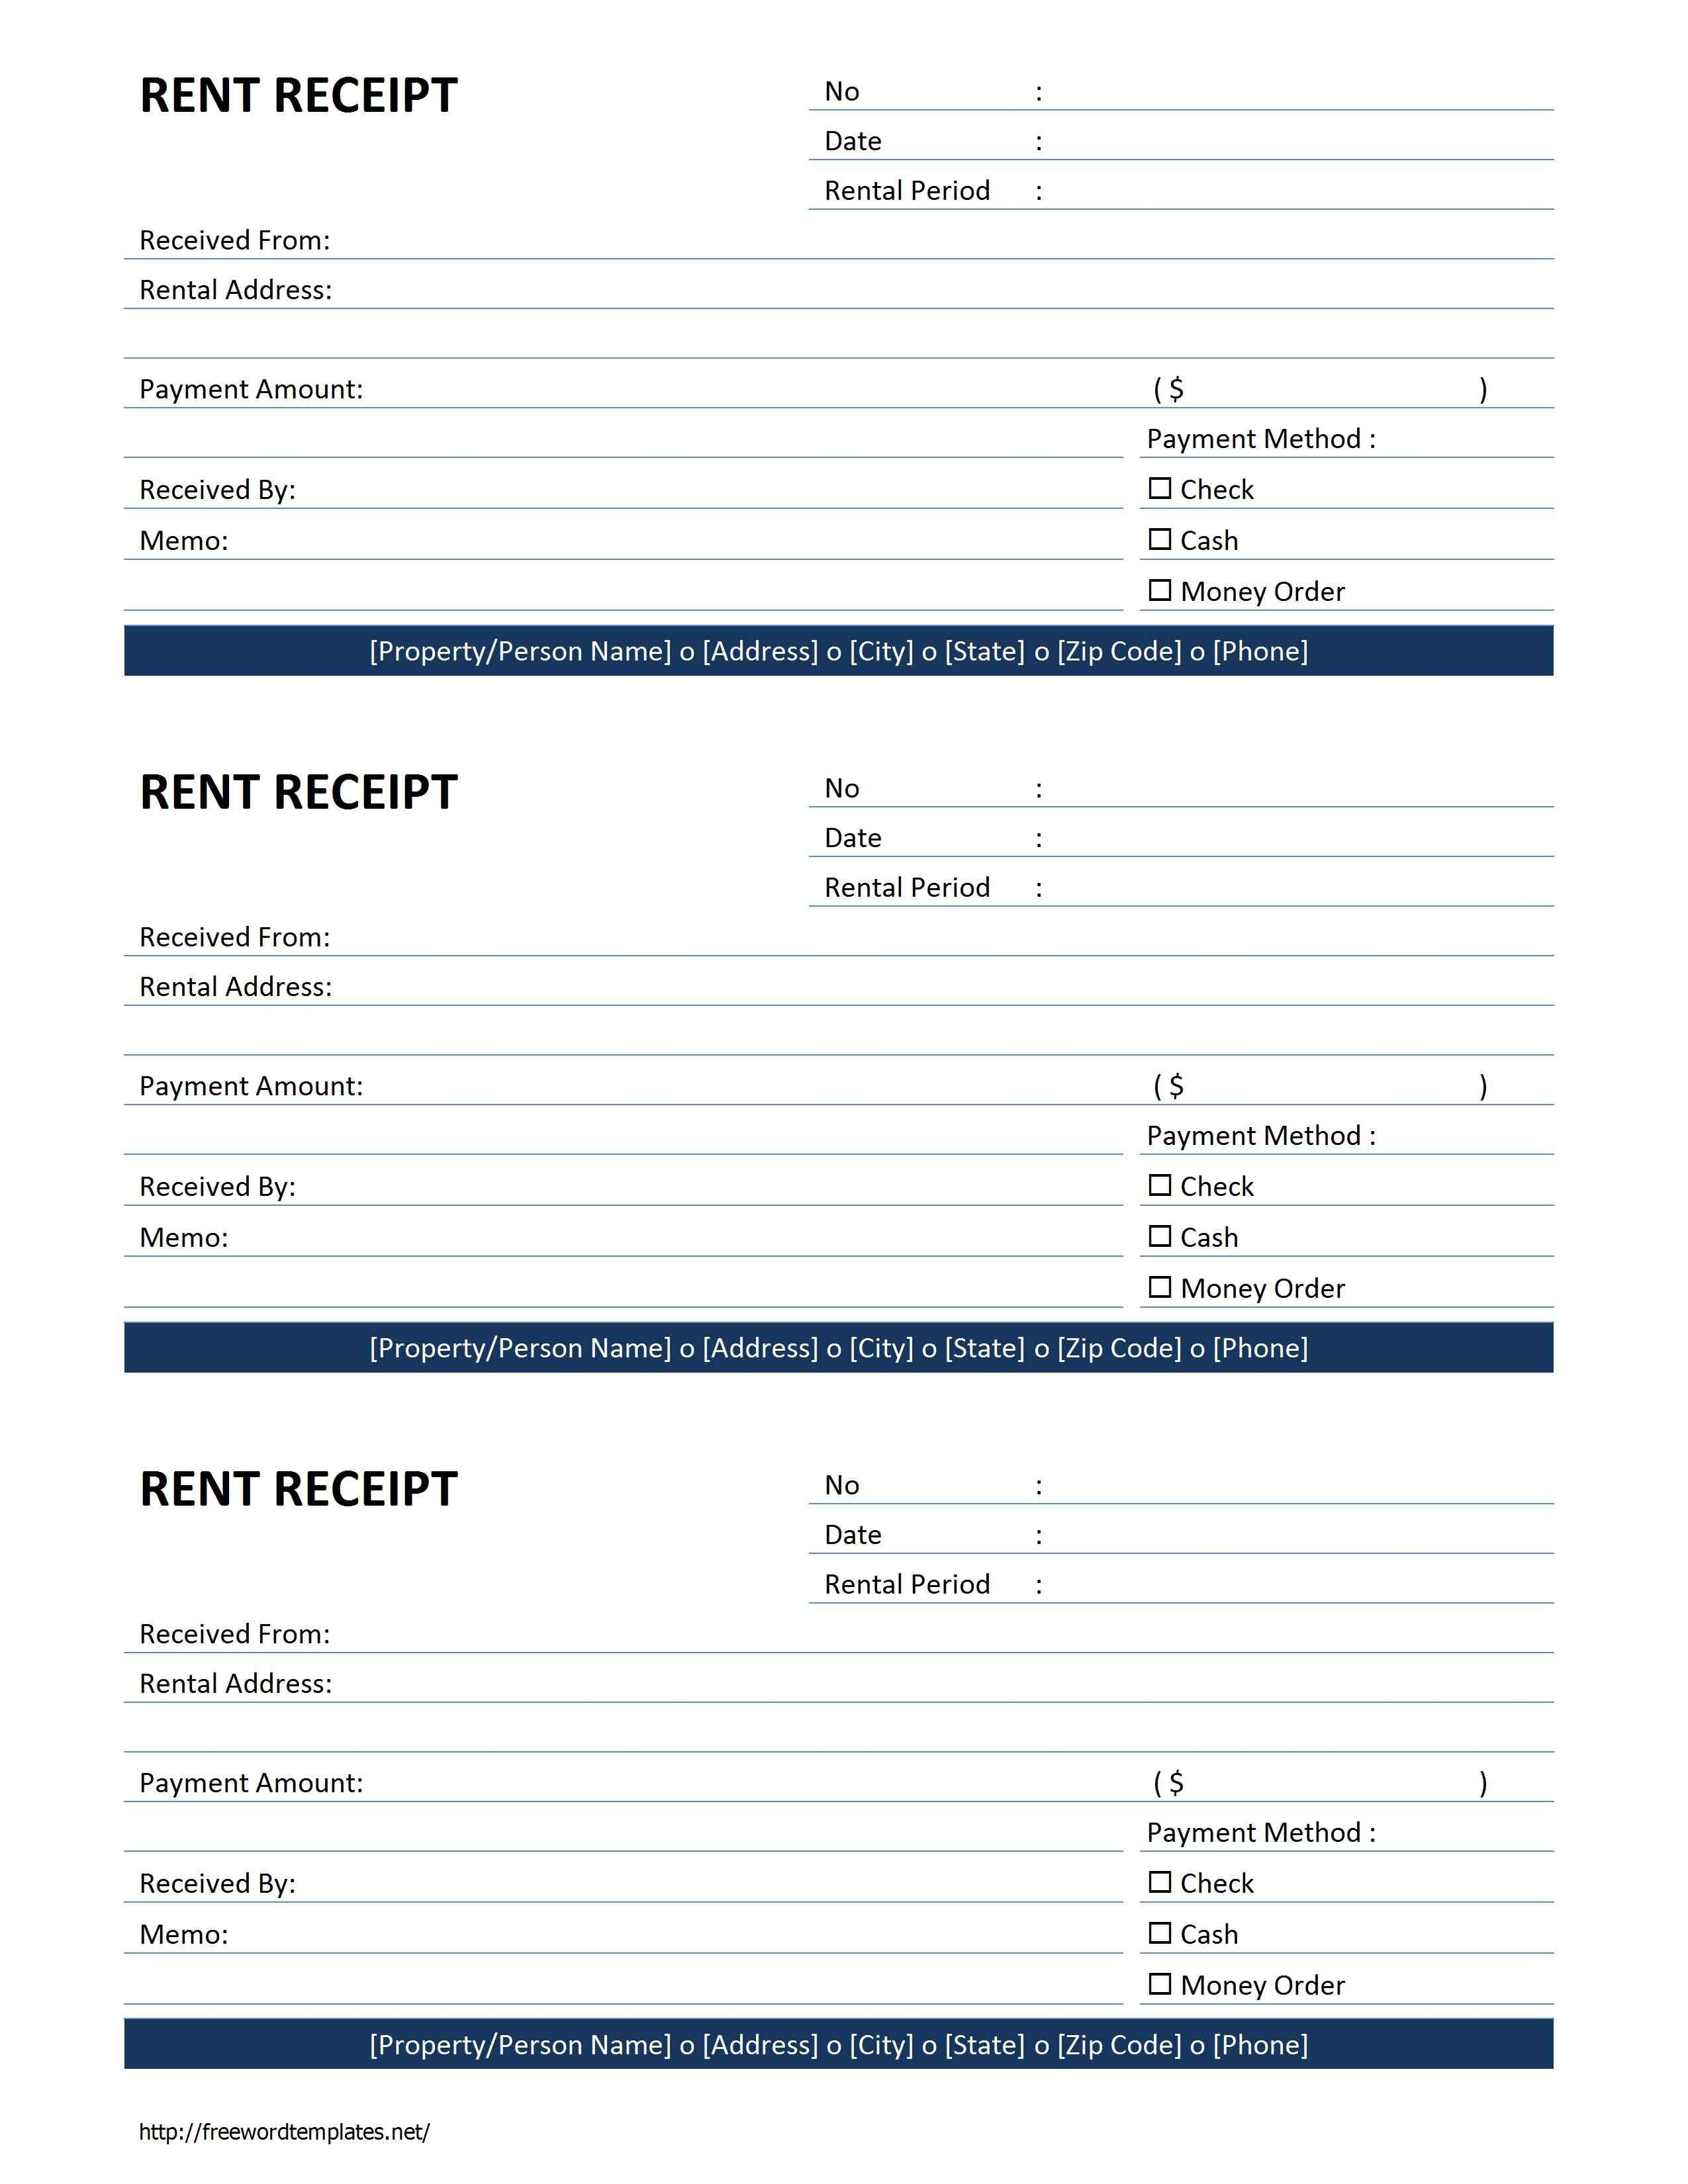 How To Make A Receipt In Word - arxiusarquitectura